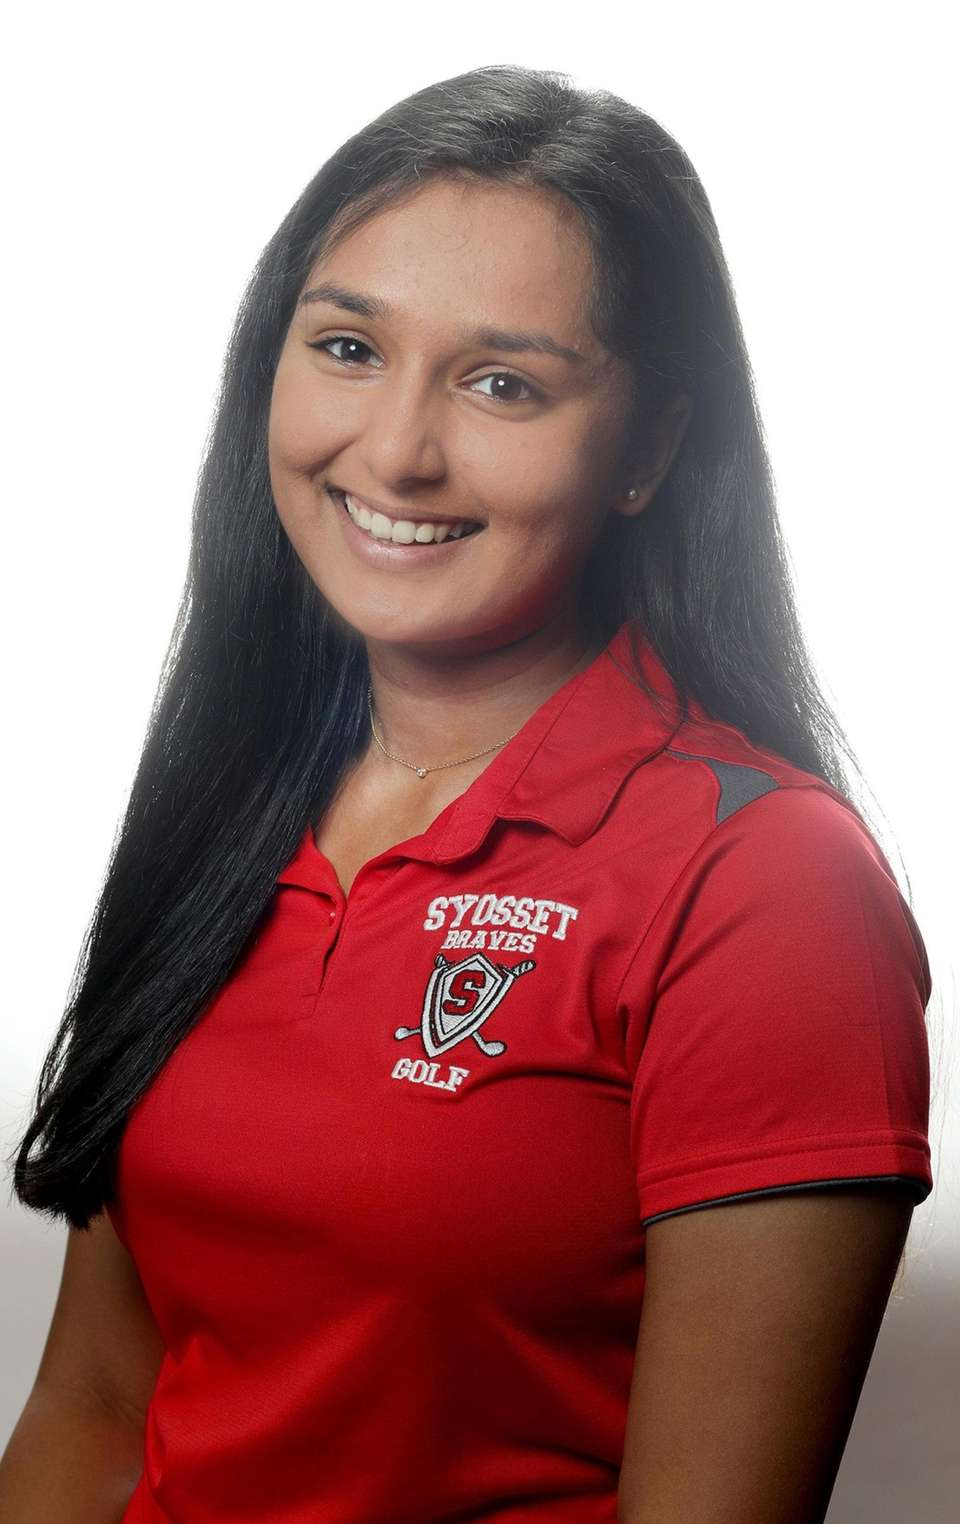 Girls Golf - Malini Rudra, Syosset High School